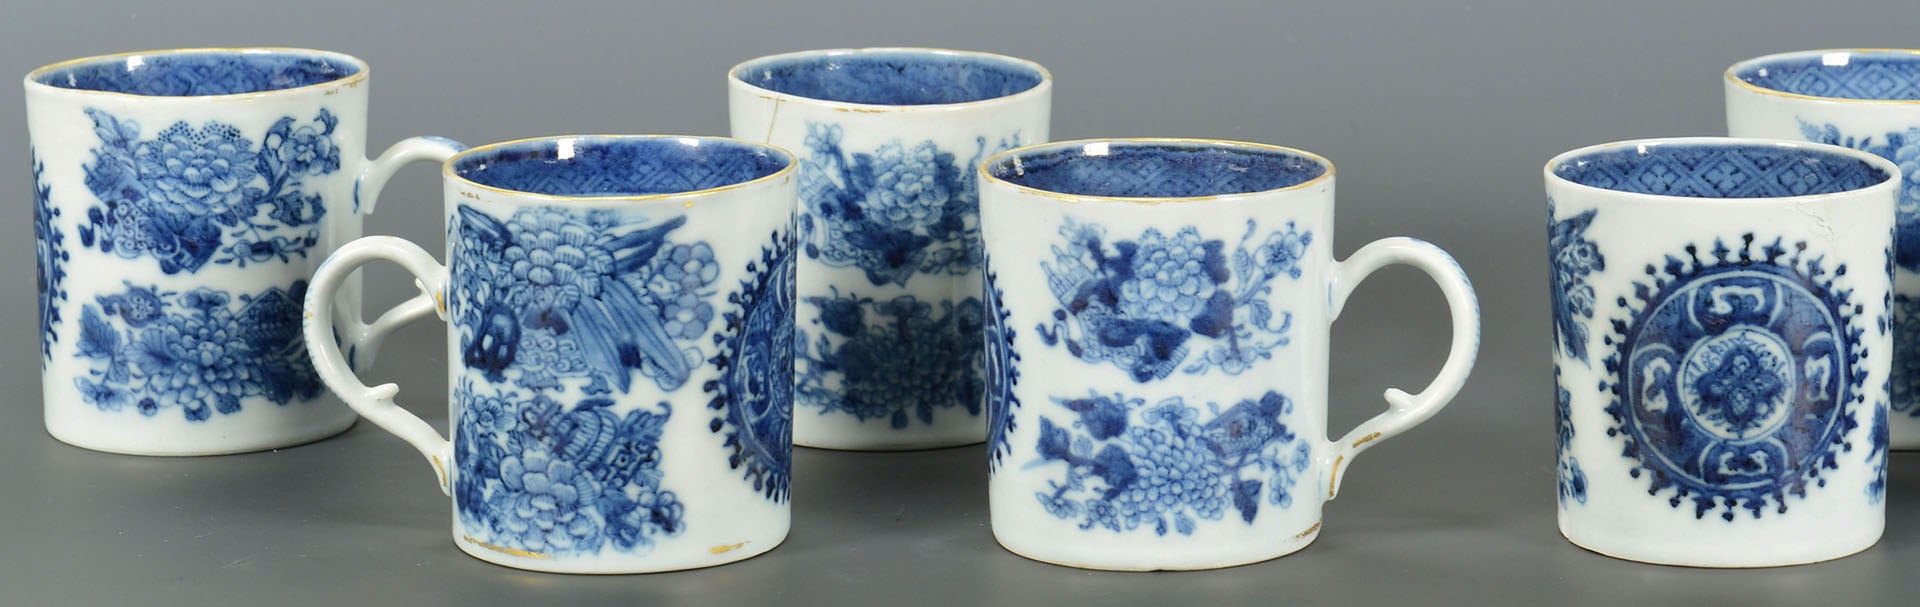 Lot 230: 18 pcs assorted Fitzhugh Chinese Export porcelain